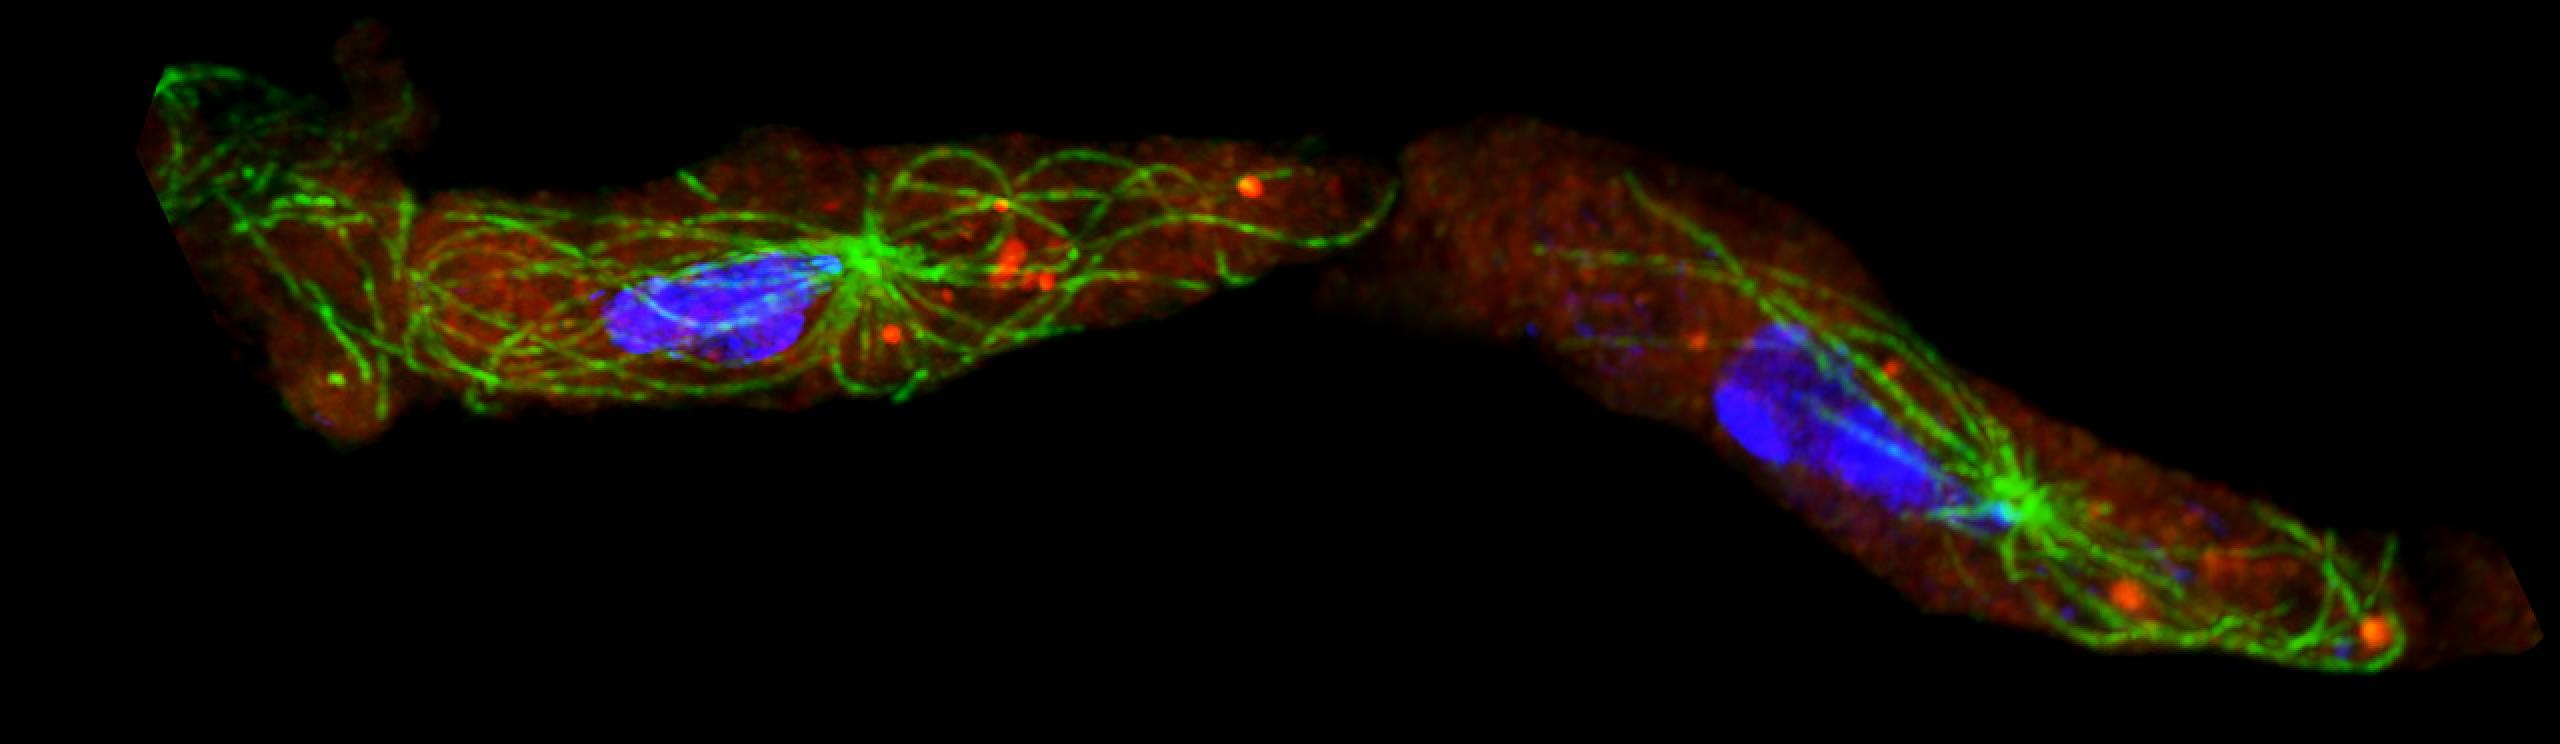 Immunofluorescence image of chemotaxing Dictyostelium cells showing the distribution of microtubules, adenylyl cyclase mRNA, and nuclei